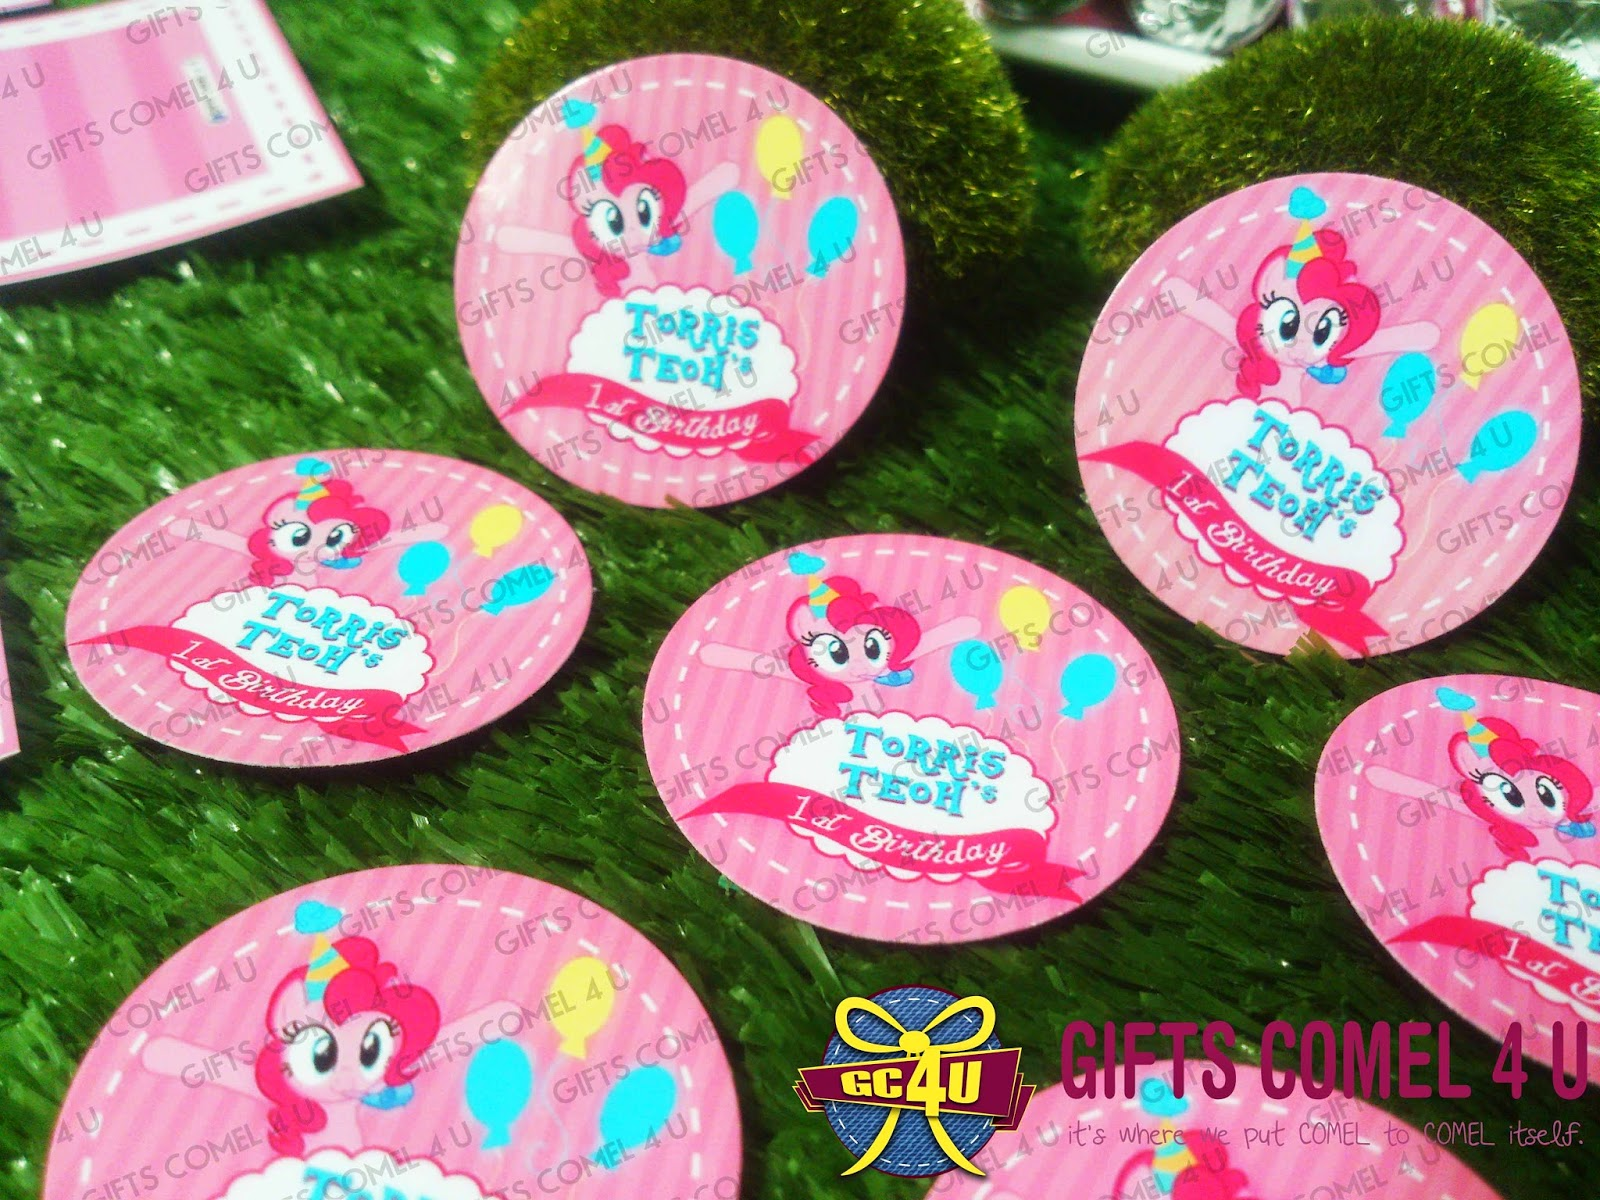 Gifts Comel 4 U Ordered By June Lim My Little Pony Pinkie Pie Luggage Tag Pink Theme Bottle Label With Personalized Wrapper